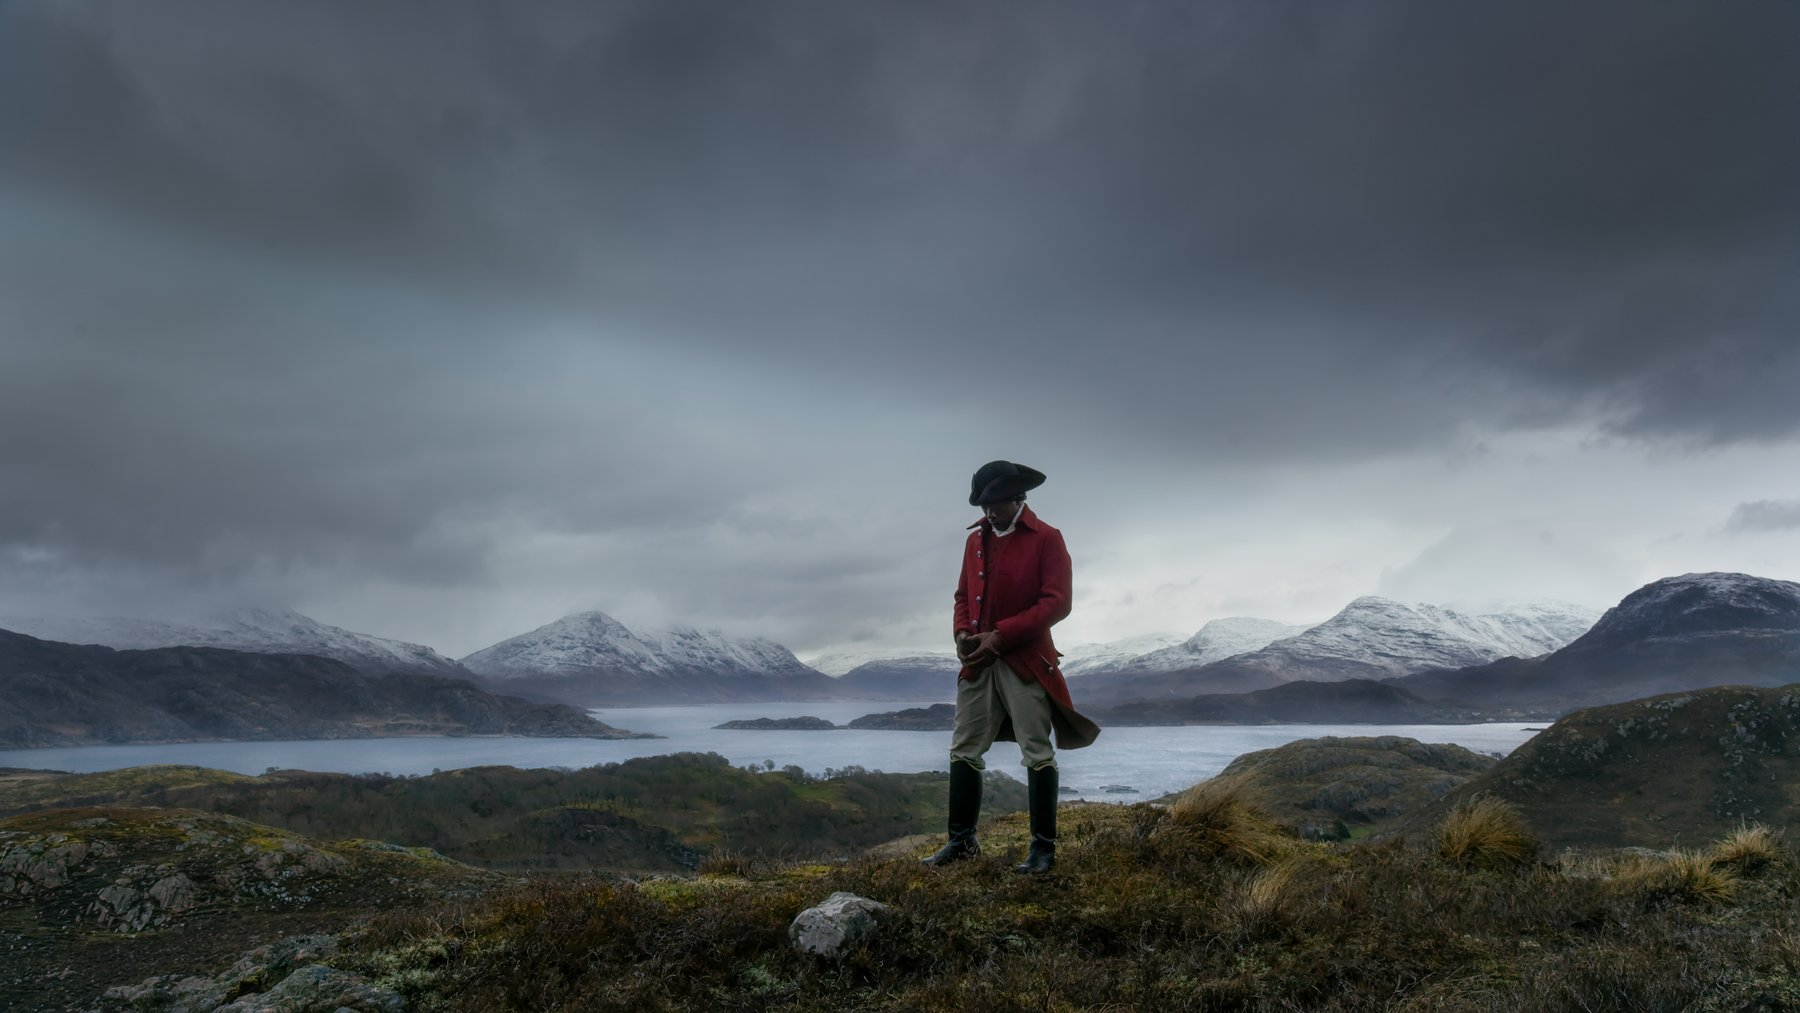 A black man dressed as an 18th century British sailor against a dramatic landscape